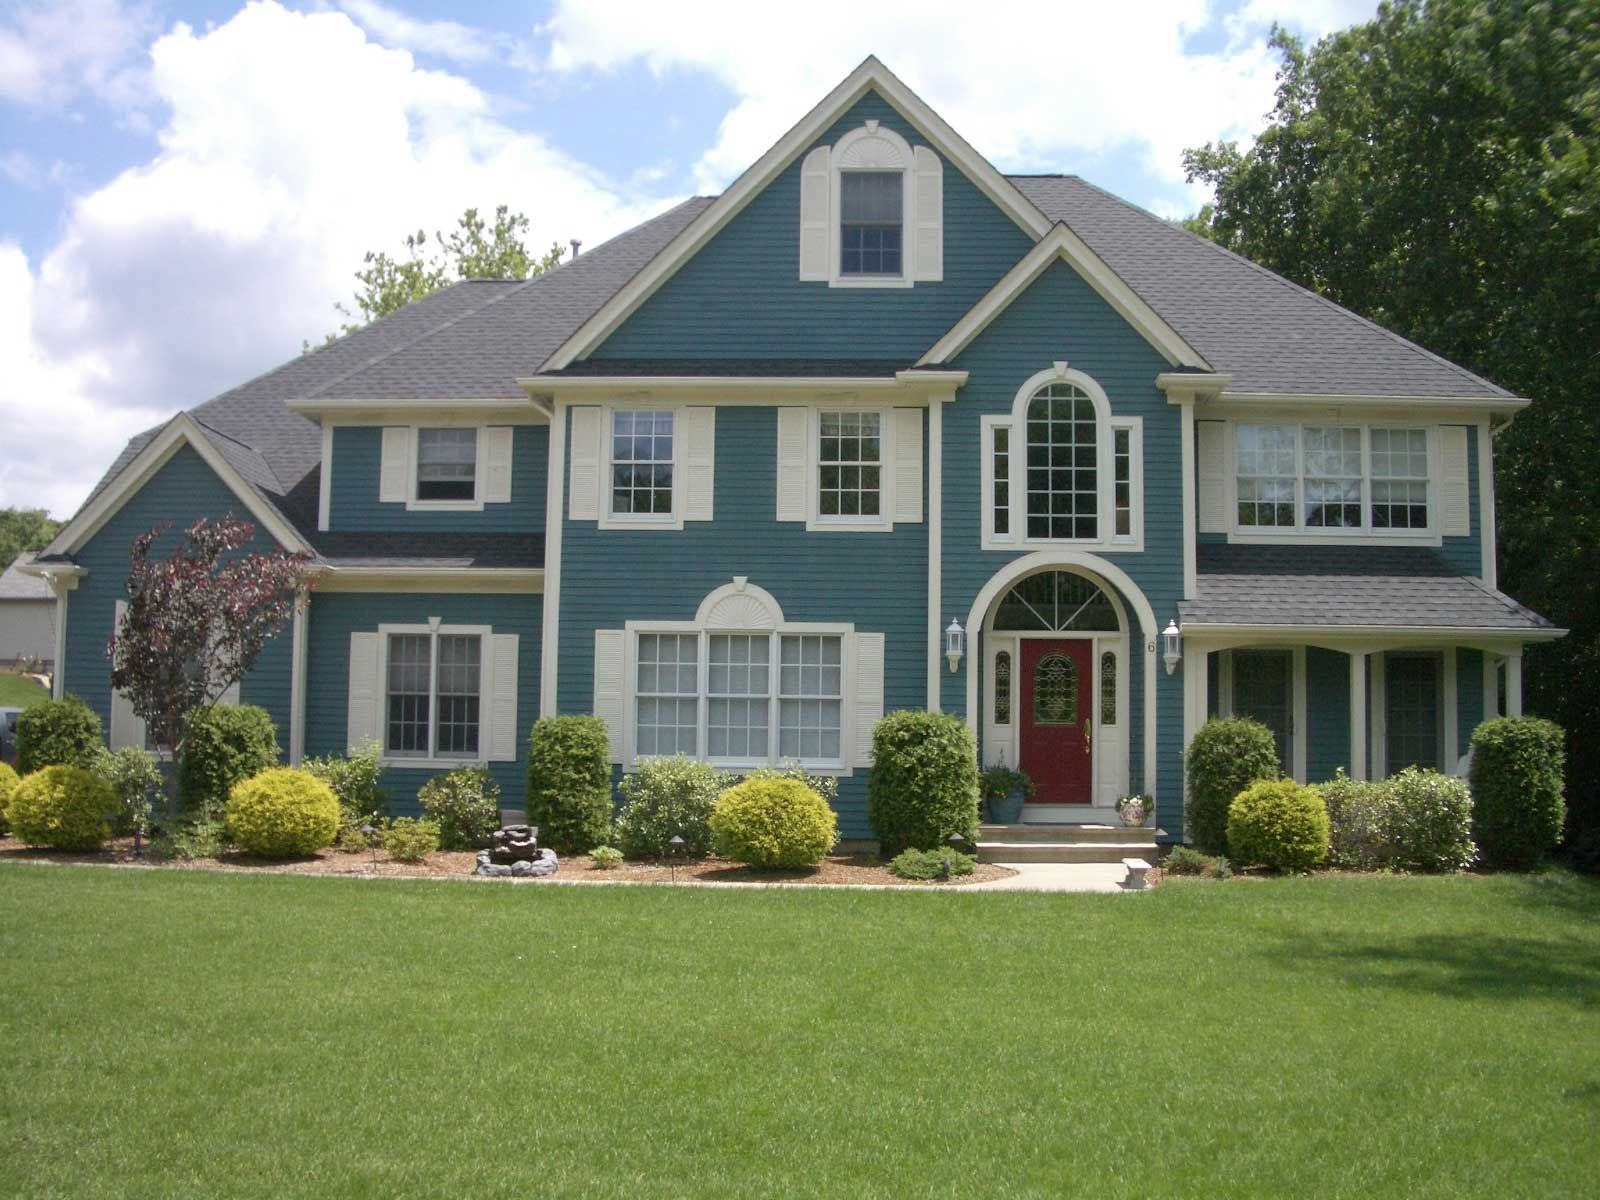 Exterior Paint Schemes Ranch Style - Ranch style house exterior color schemes google search